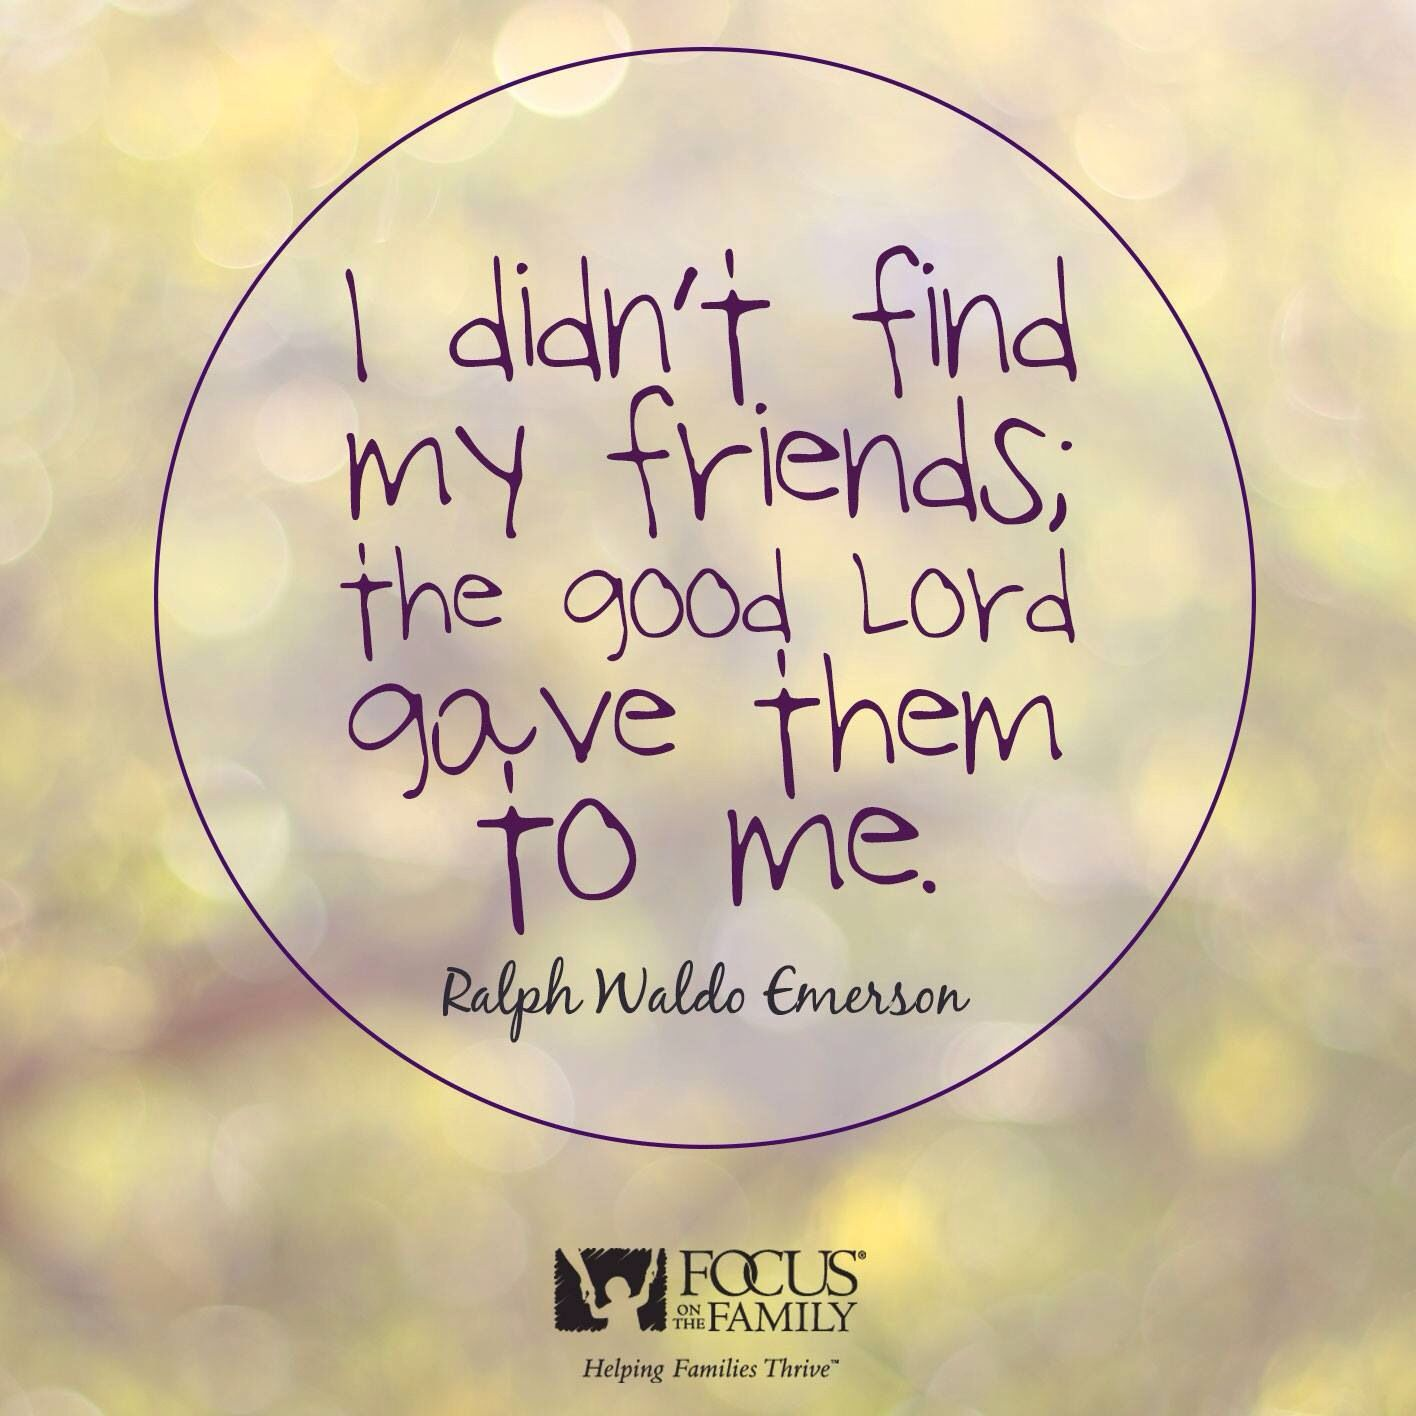 I didn't find my friends, the Good Lord gave them to me!